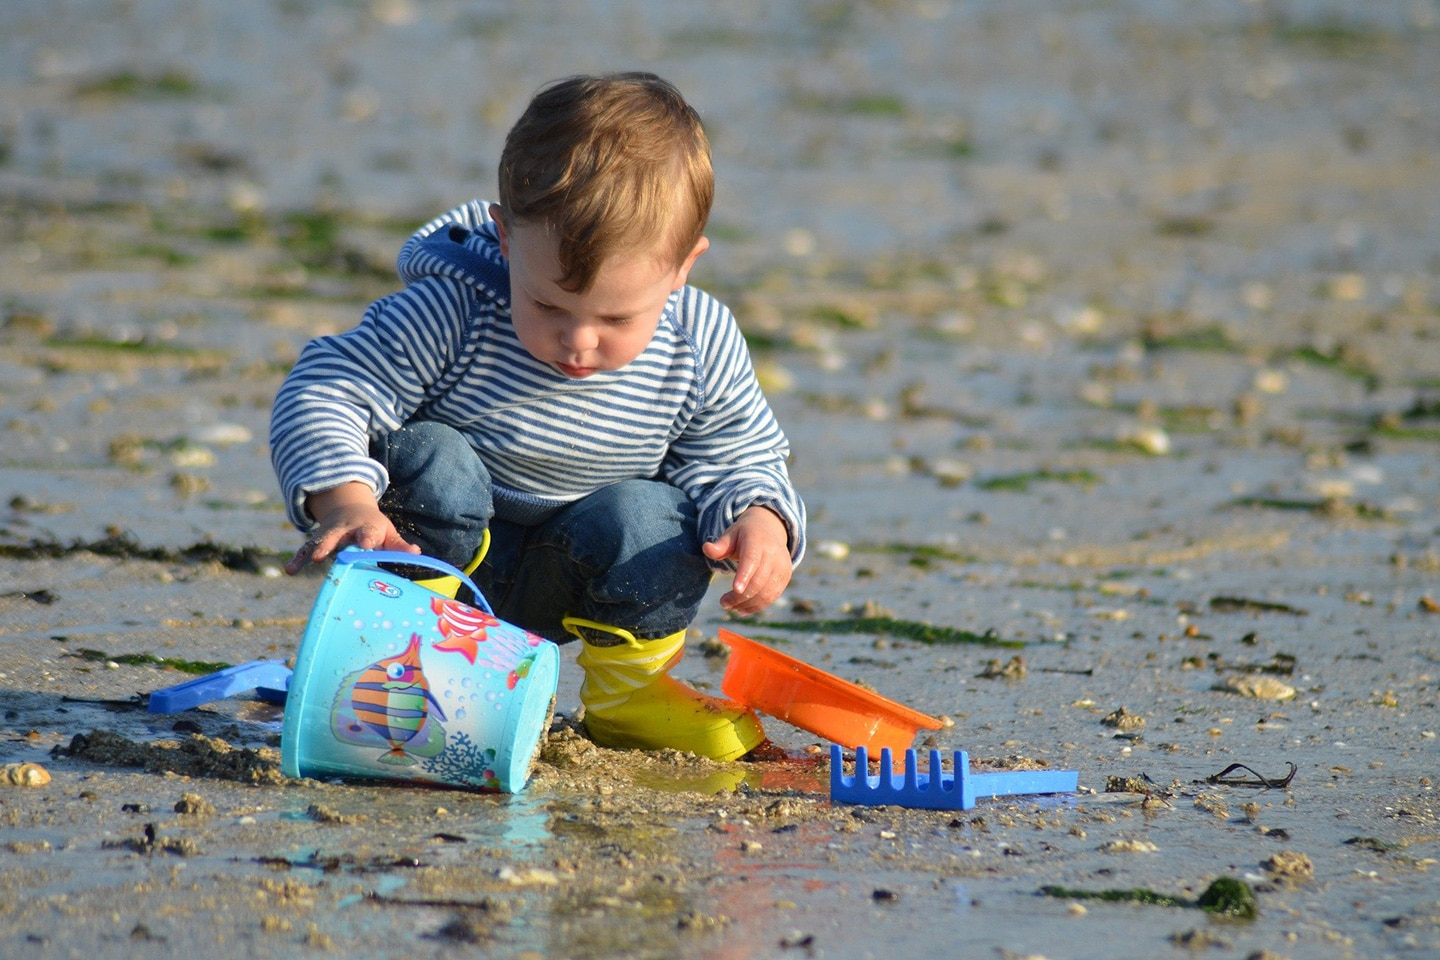 kid is playing on the beach with toys